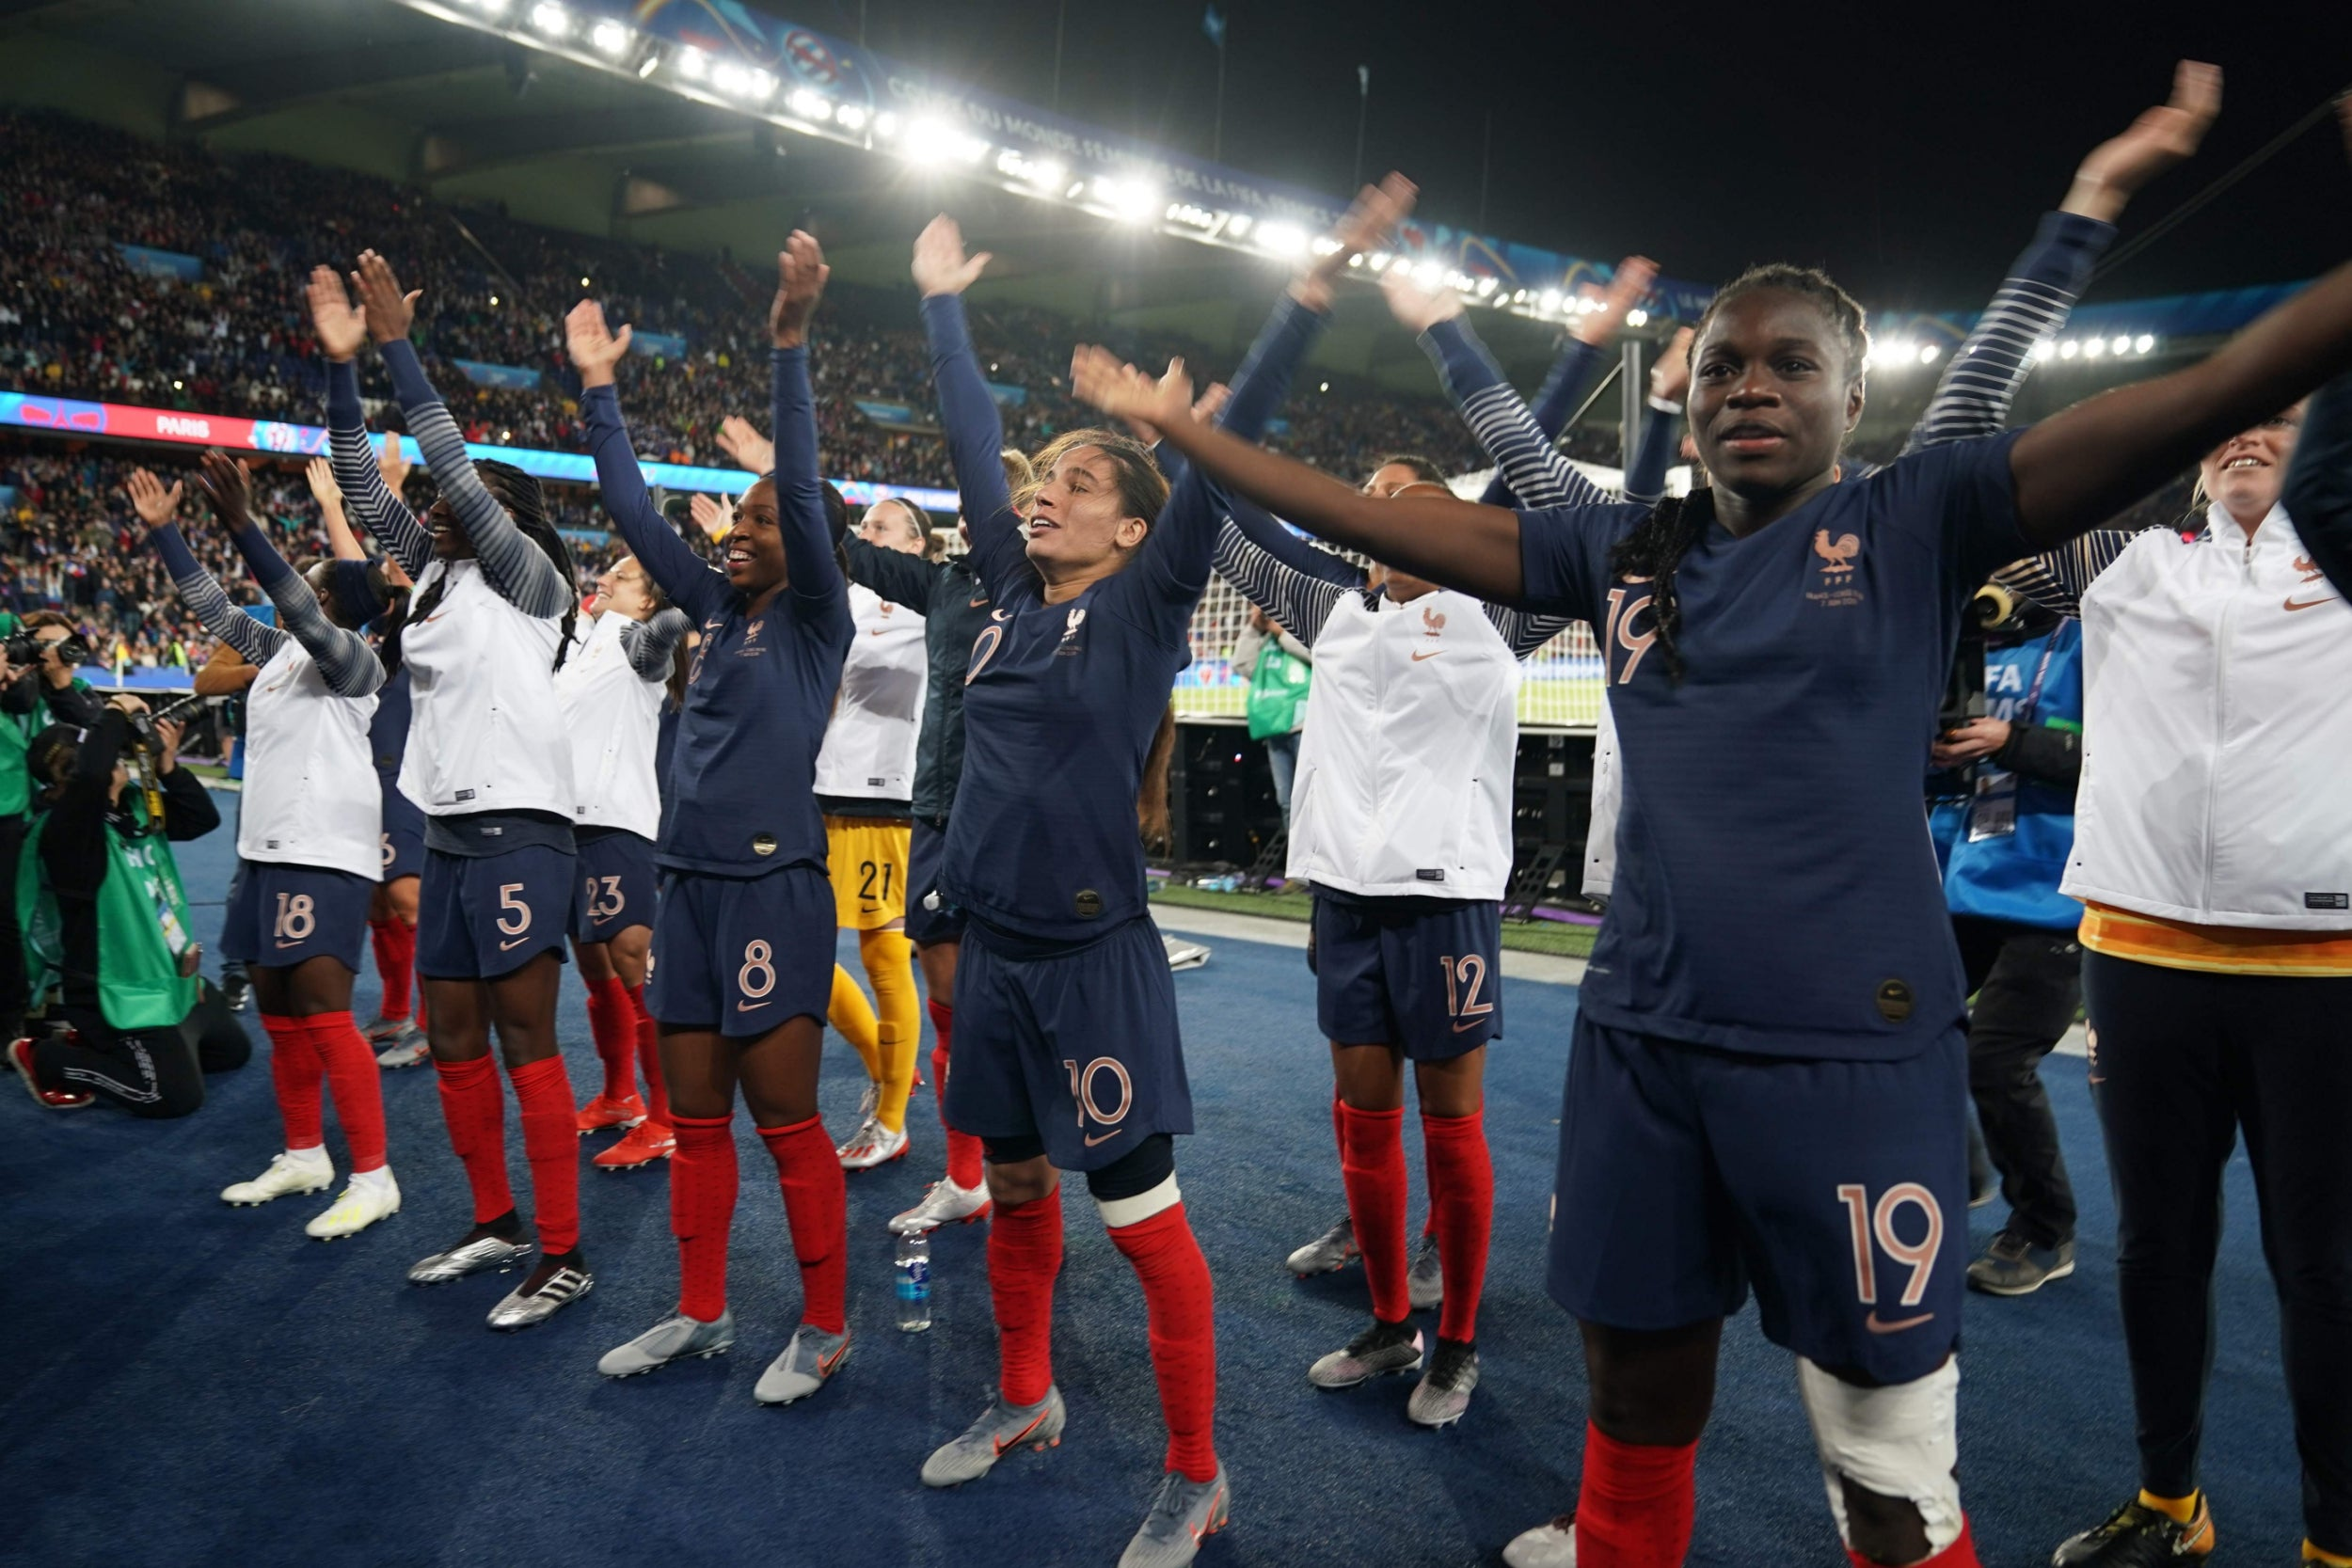 USA vs Netherlands: Live stream searches for Women's World Cup final